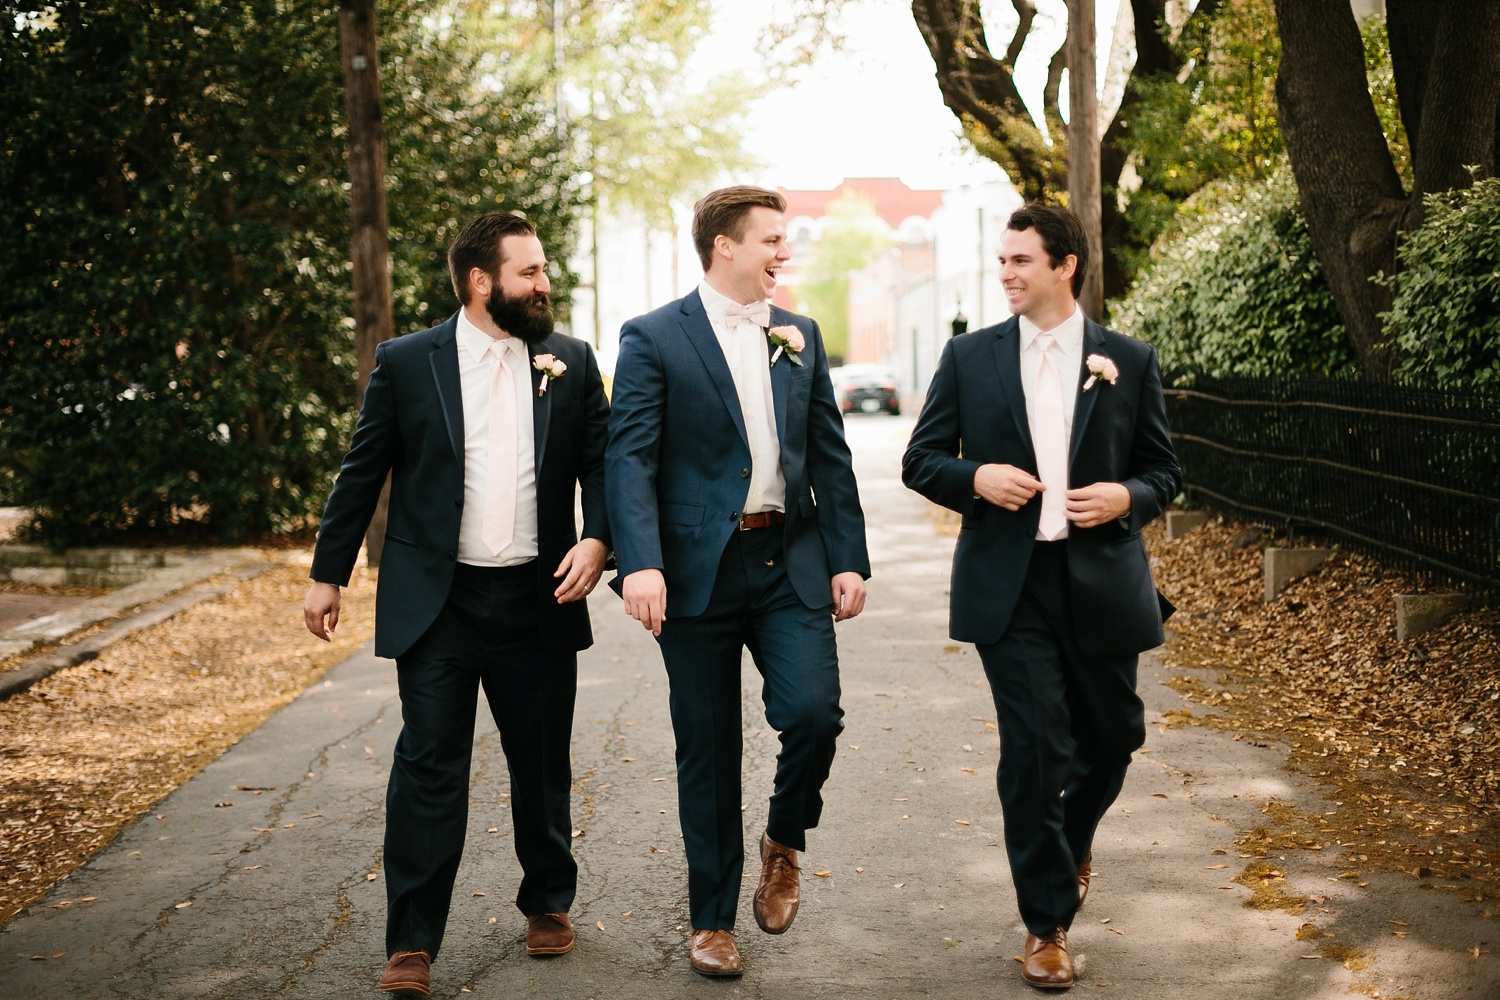 Amber + Daniel an intimate, simple, spring ceremony at Heard Craig Center and reception at Gather in McKinney, Texas by North Texas Wedding Photographer Rachel Meagan Photography 041